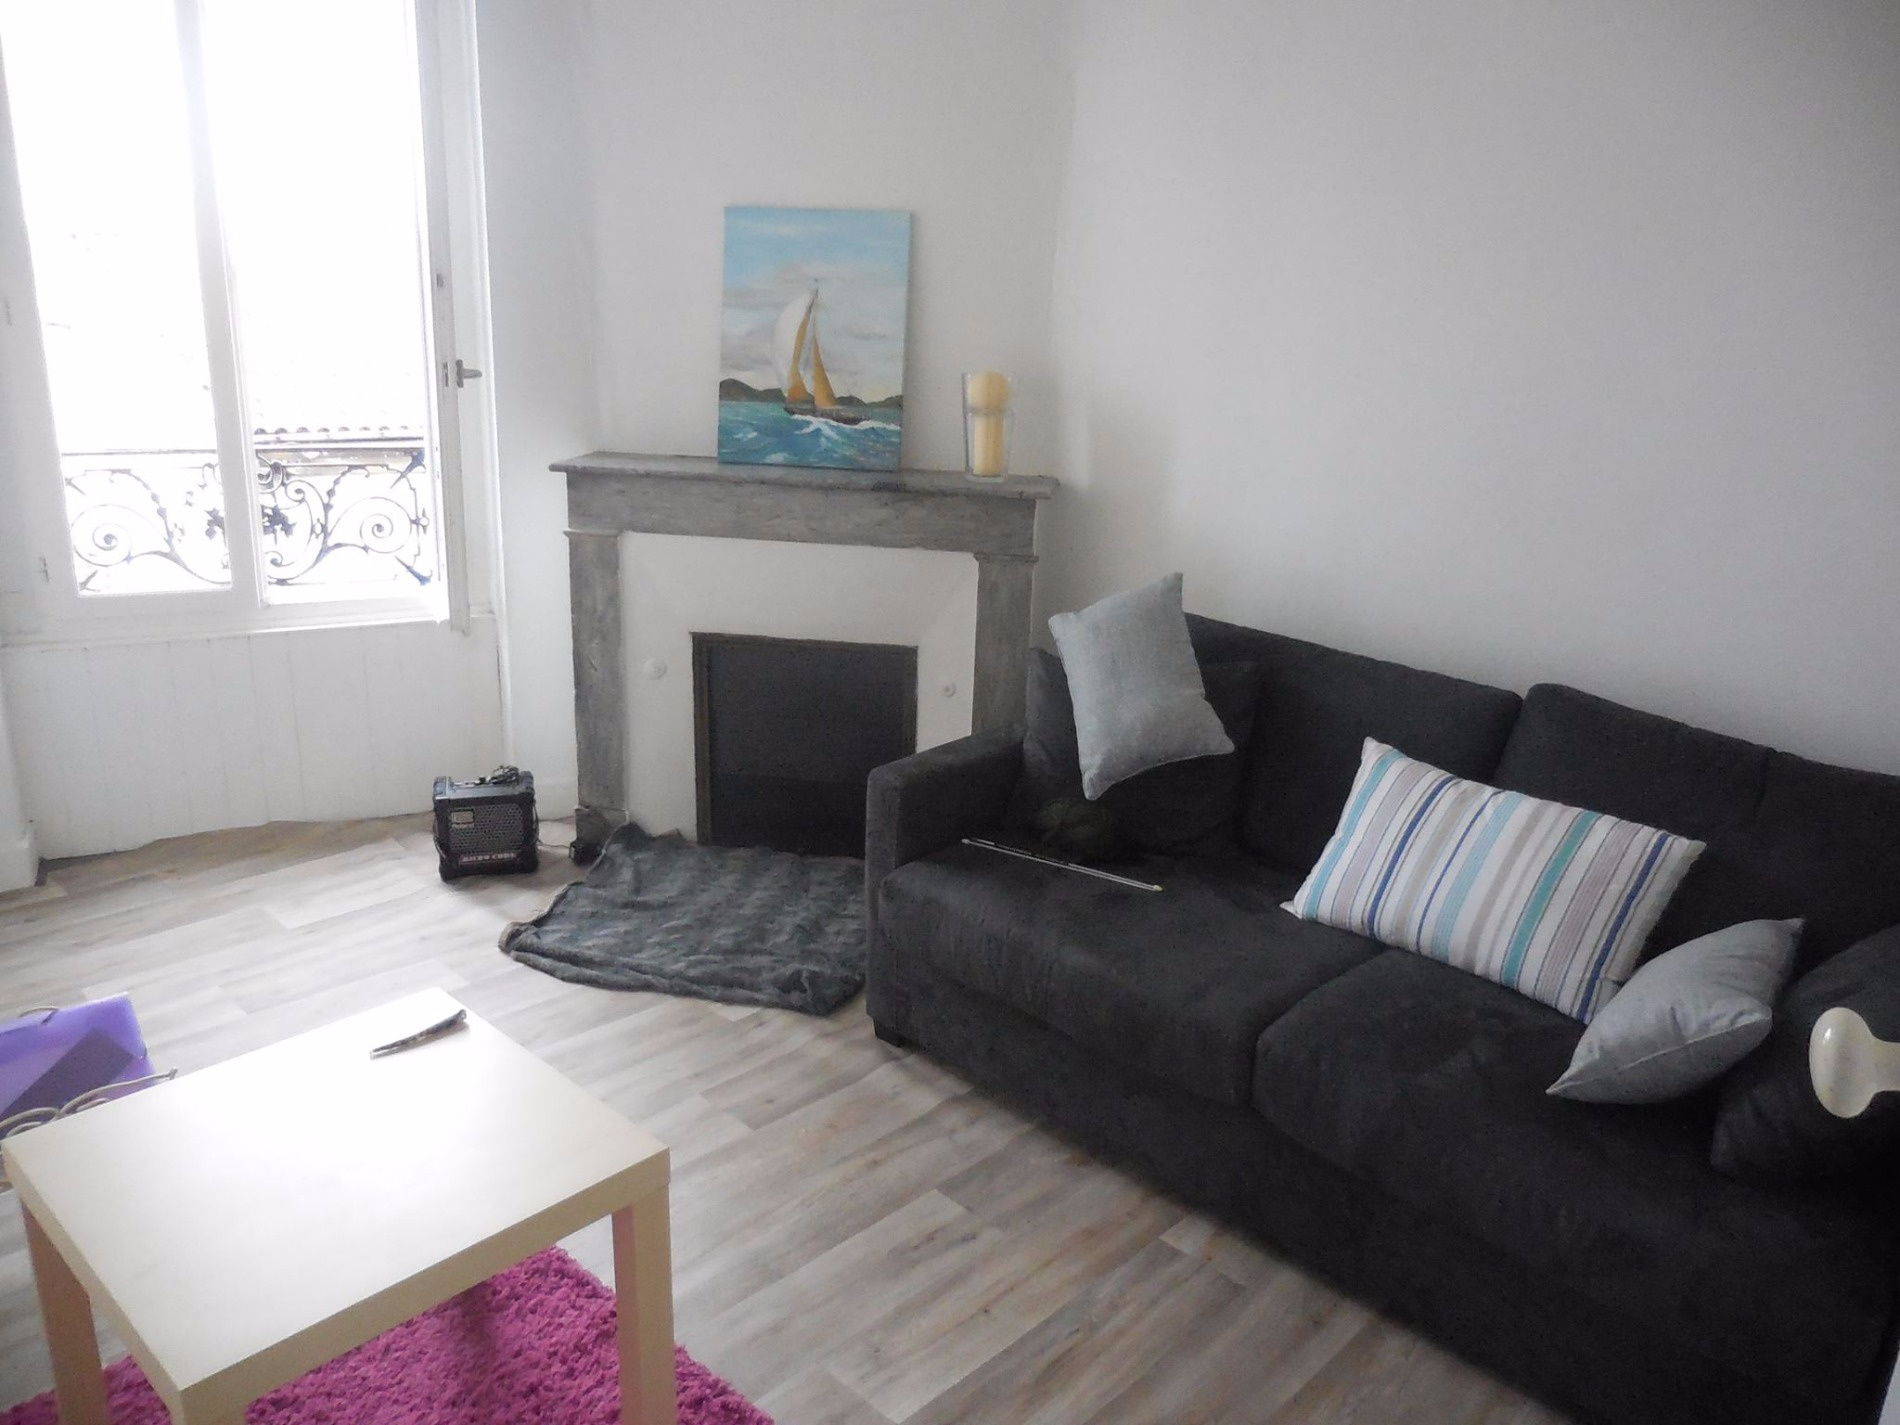 Location bordeaux saint pierre st michel et plus for Location appartement bordeaux oralia